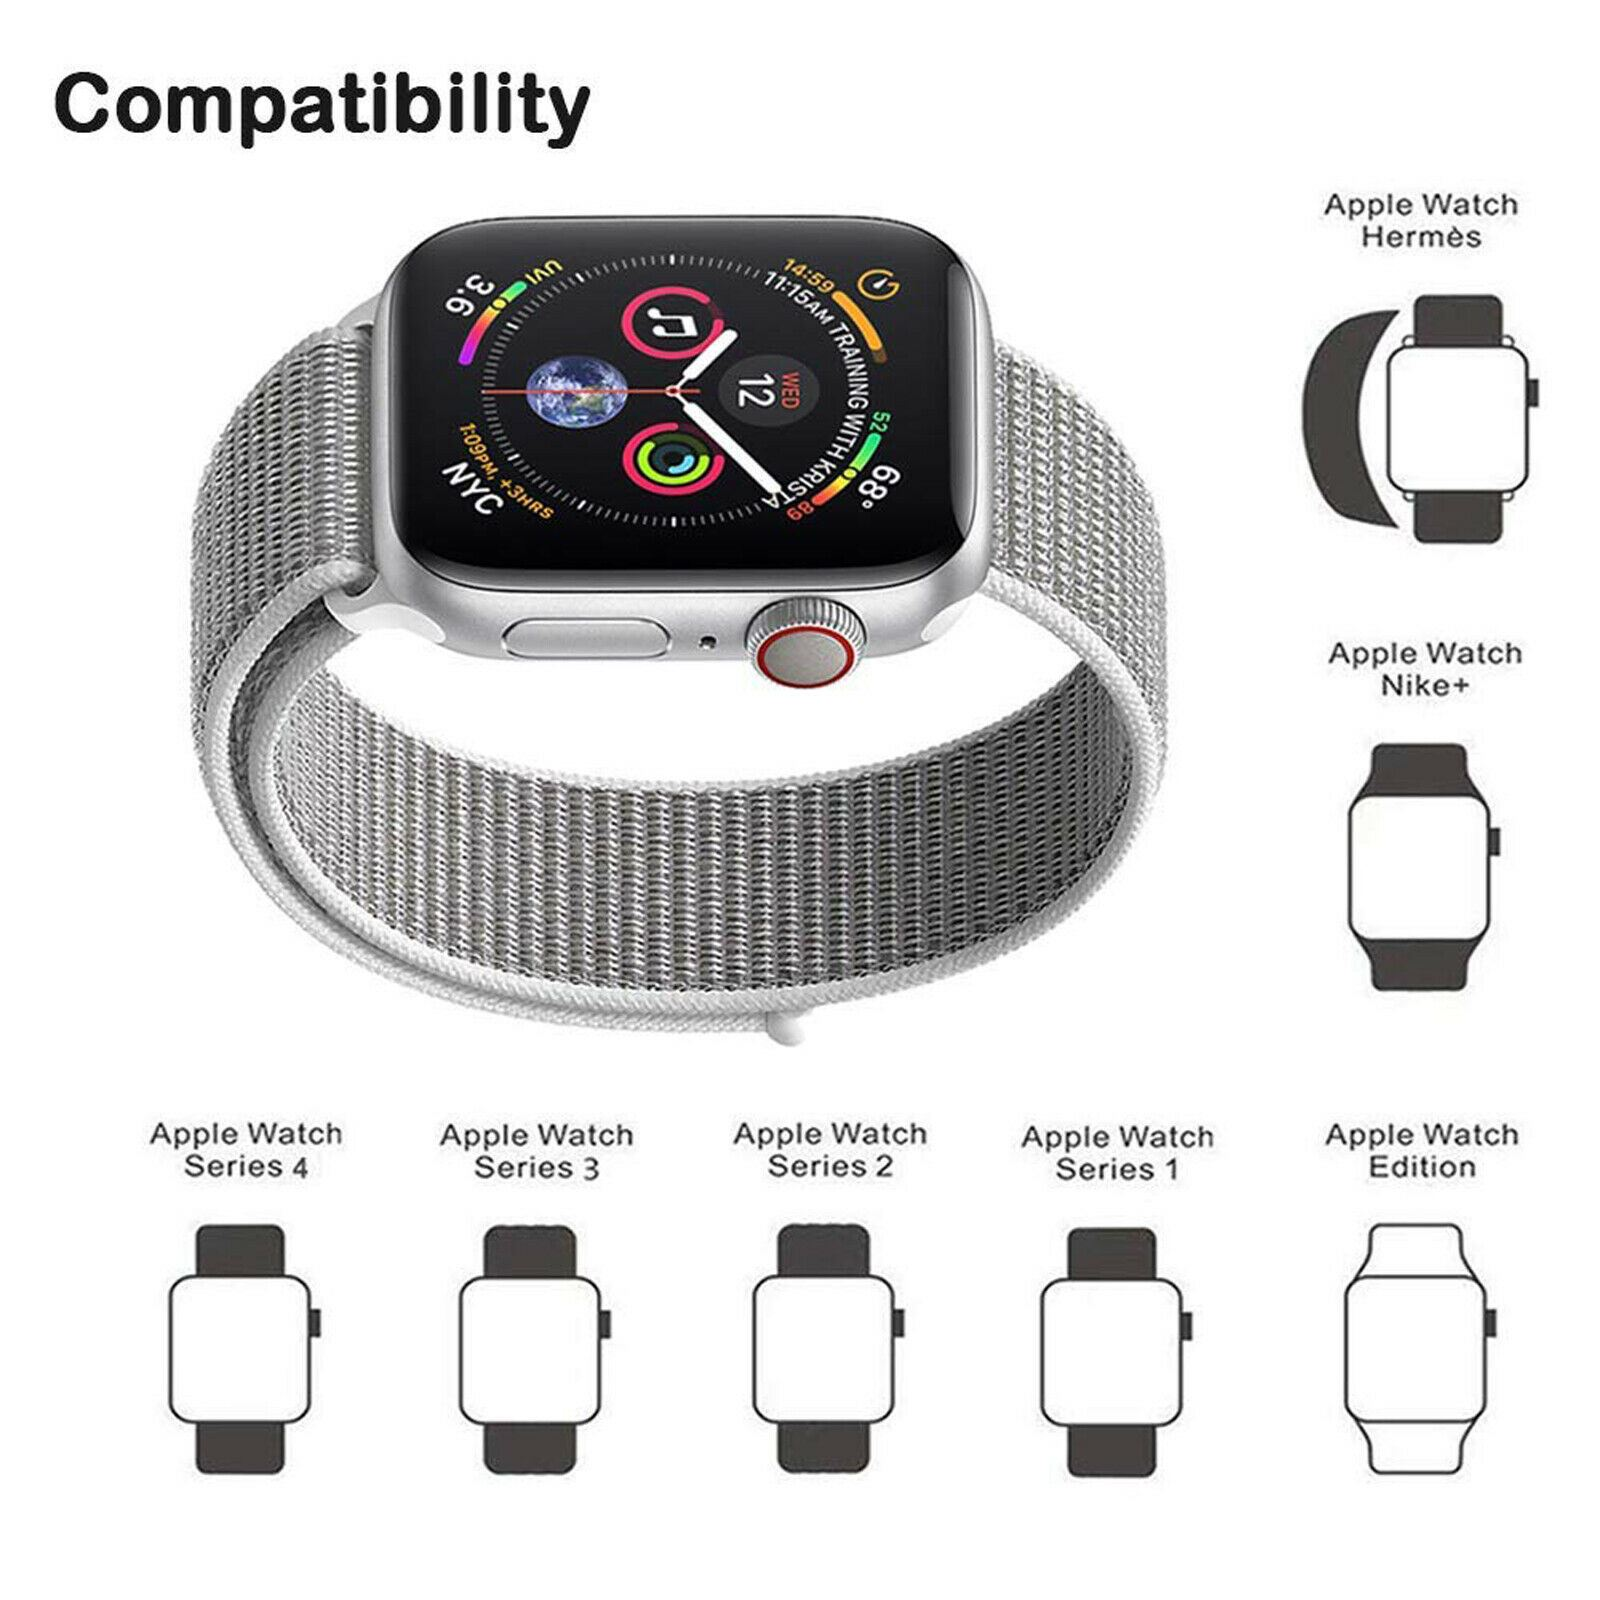 Band-Strap-For-Apple-Watch-Adjustable-Waterproof-Braided-Nylon-Material thumbnail 19